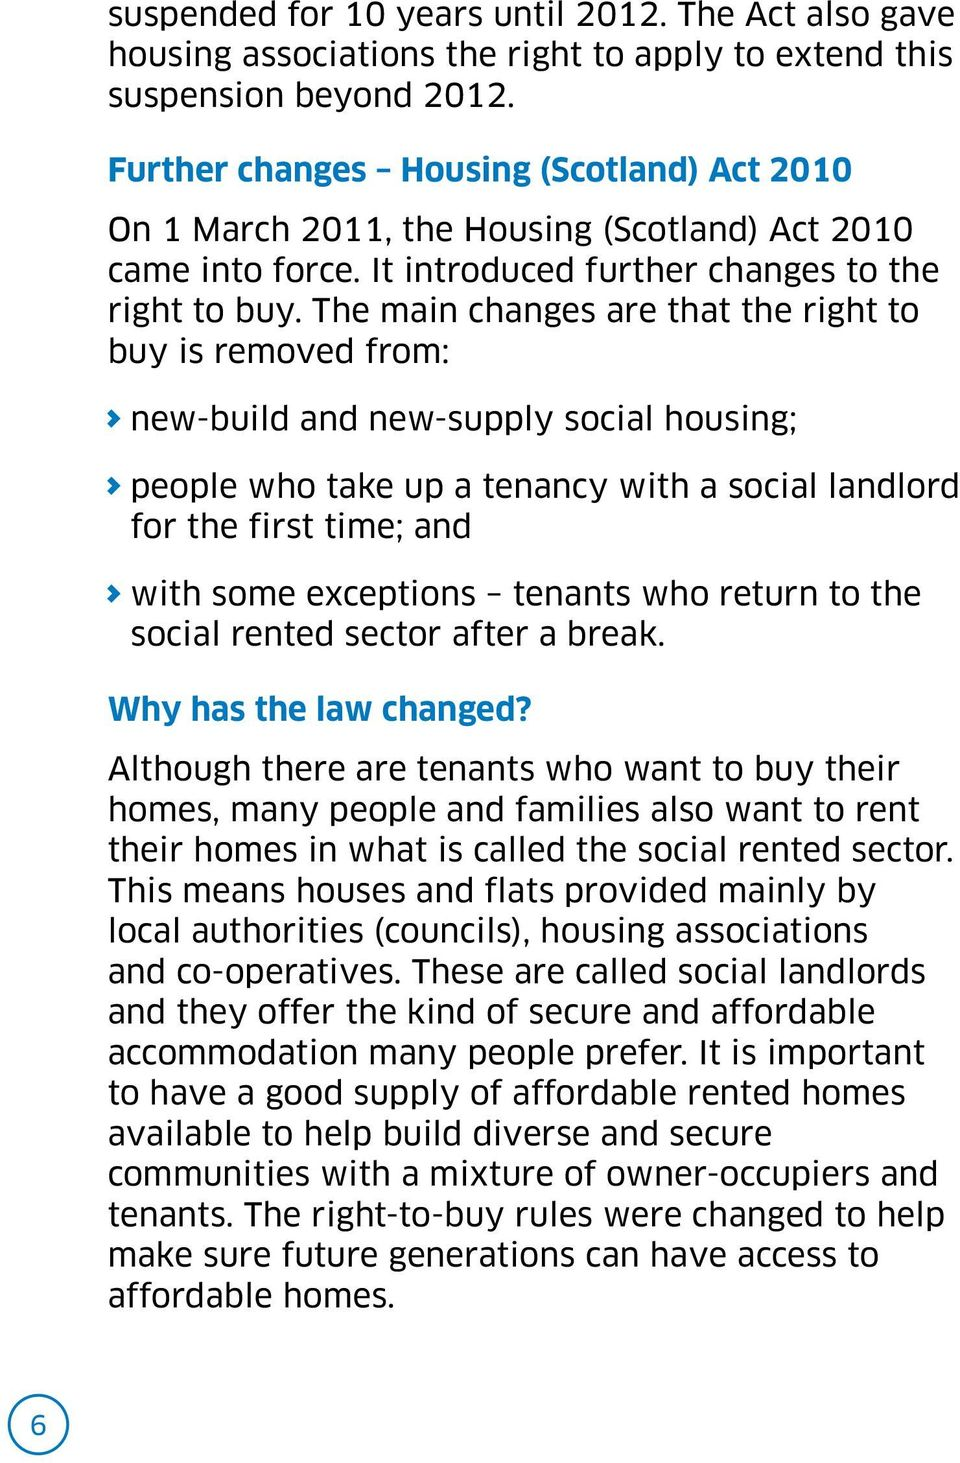 The main changes are that the right to buy is removed from: new-build and new-supply social housing; people who take up a tenancy with a social landlord for the first time; and with some exceptions